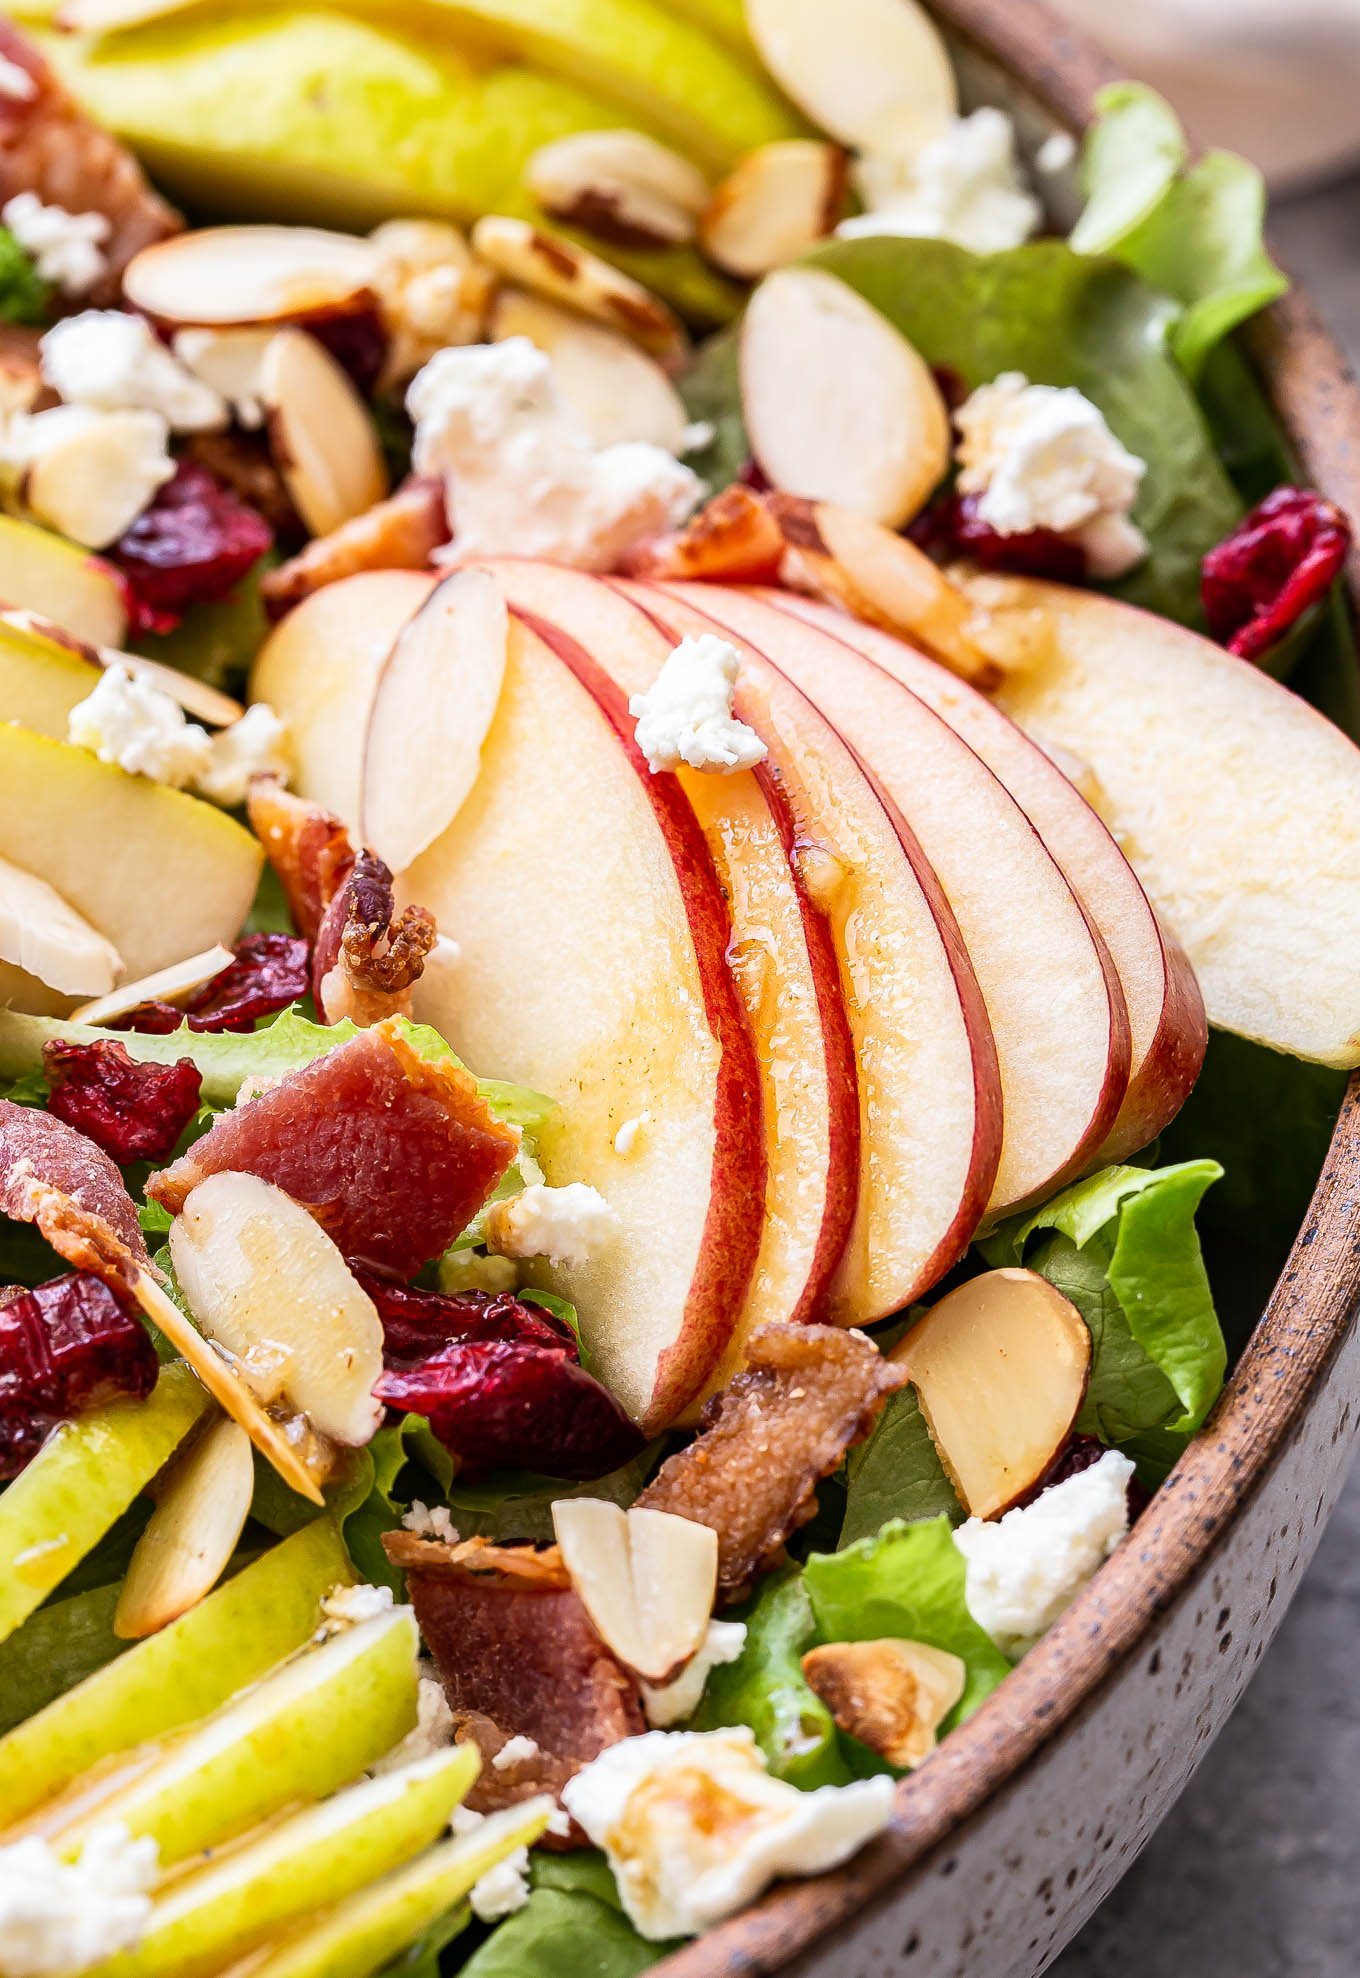 slices of apples fanned out on top of the Autumn Apple and Pear Salad